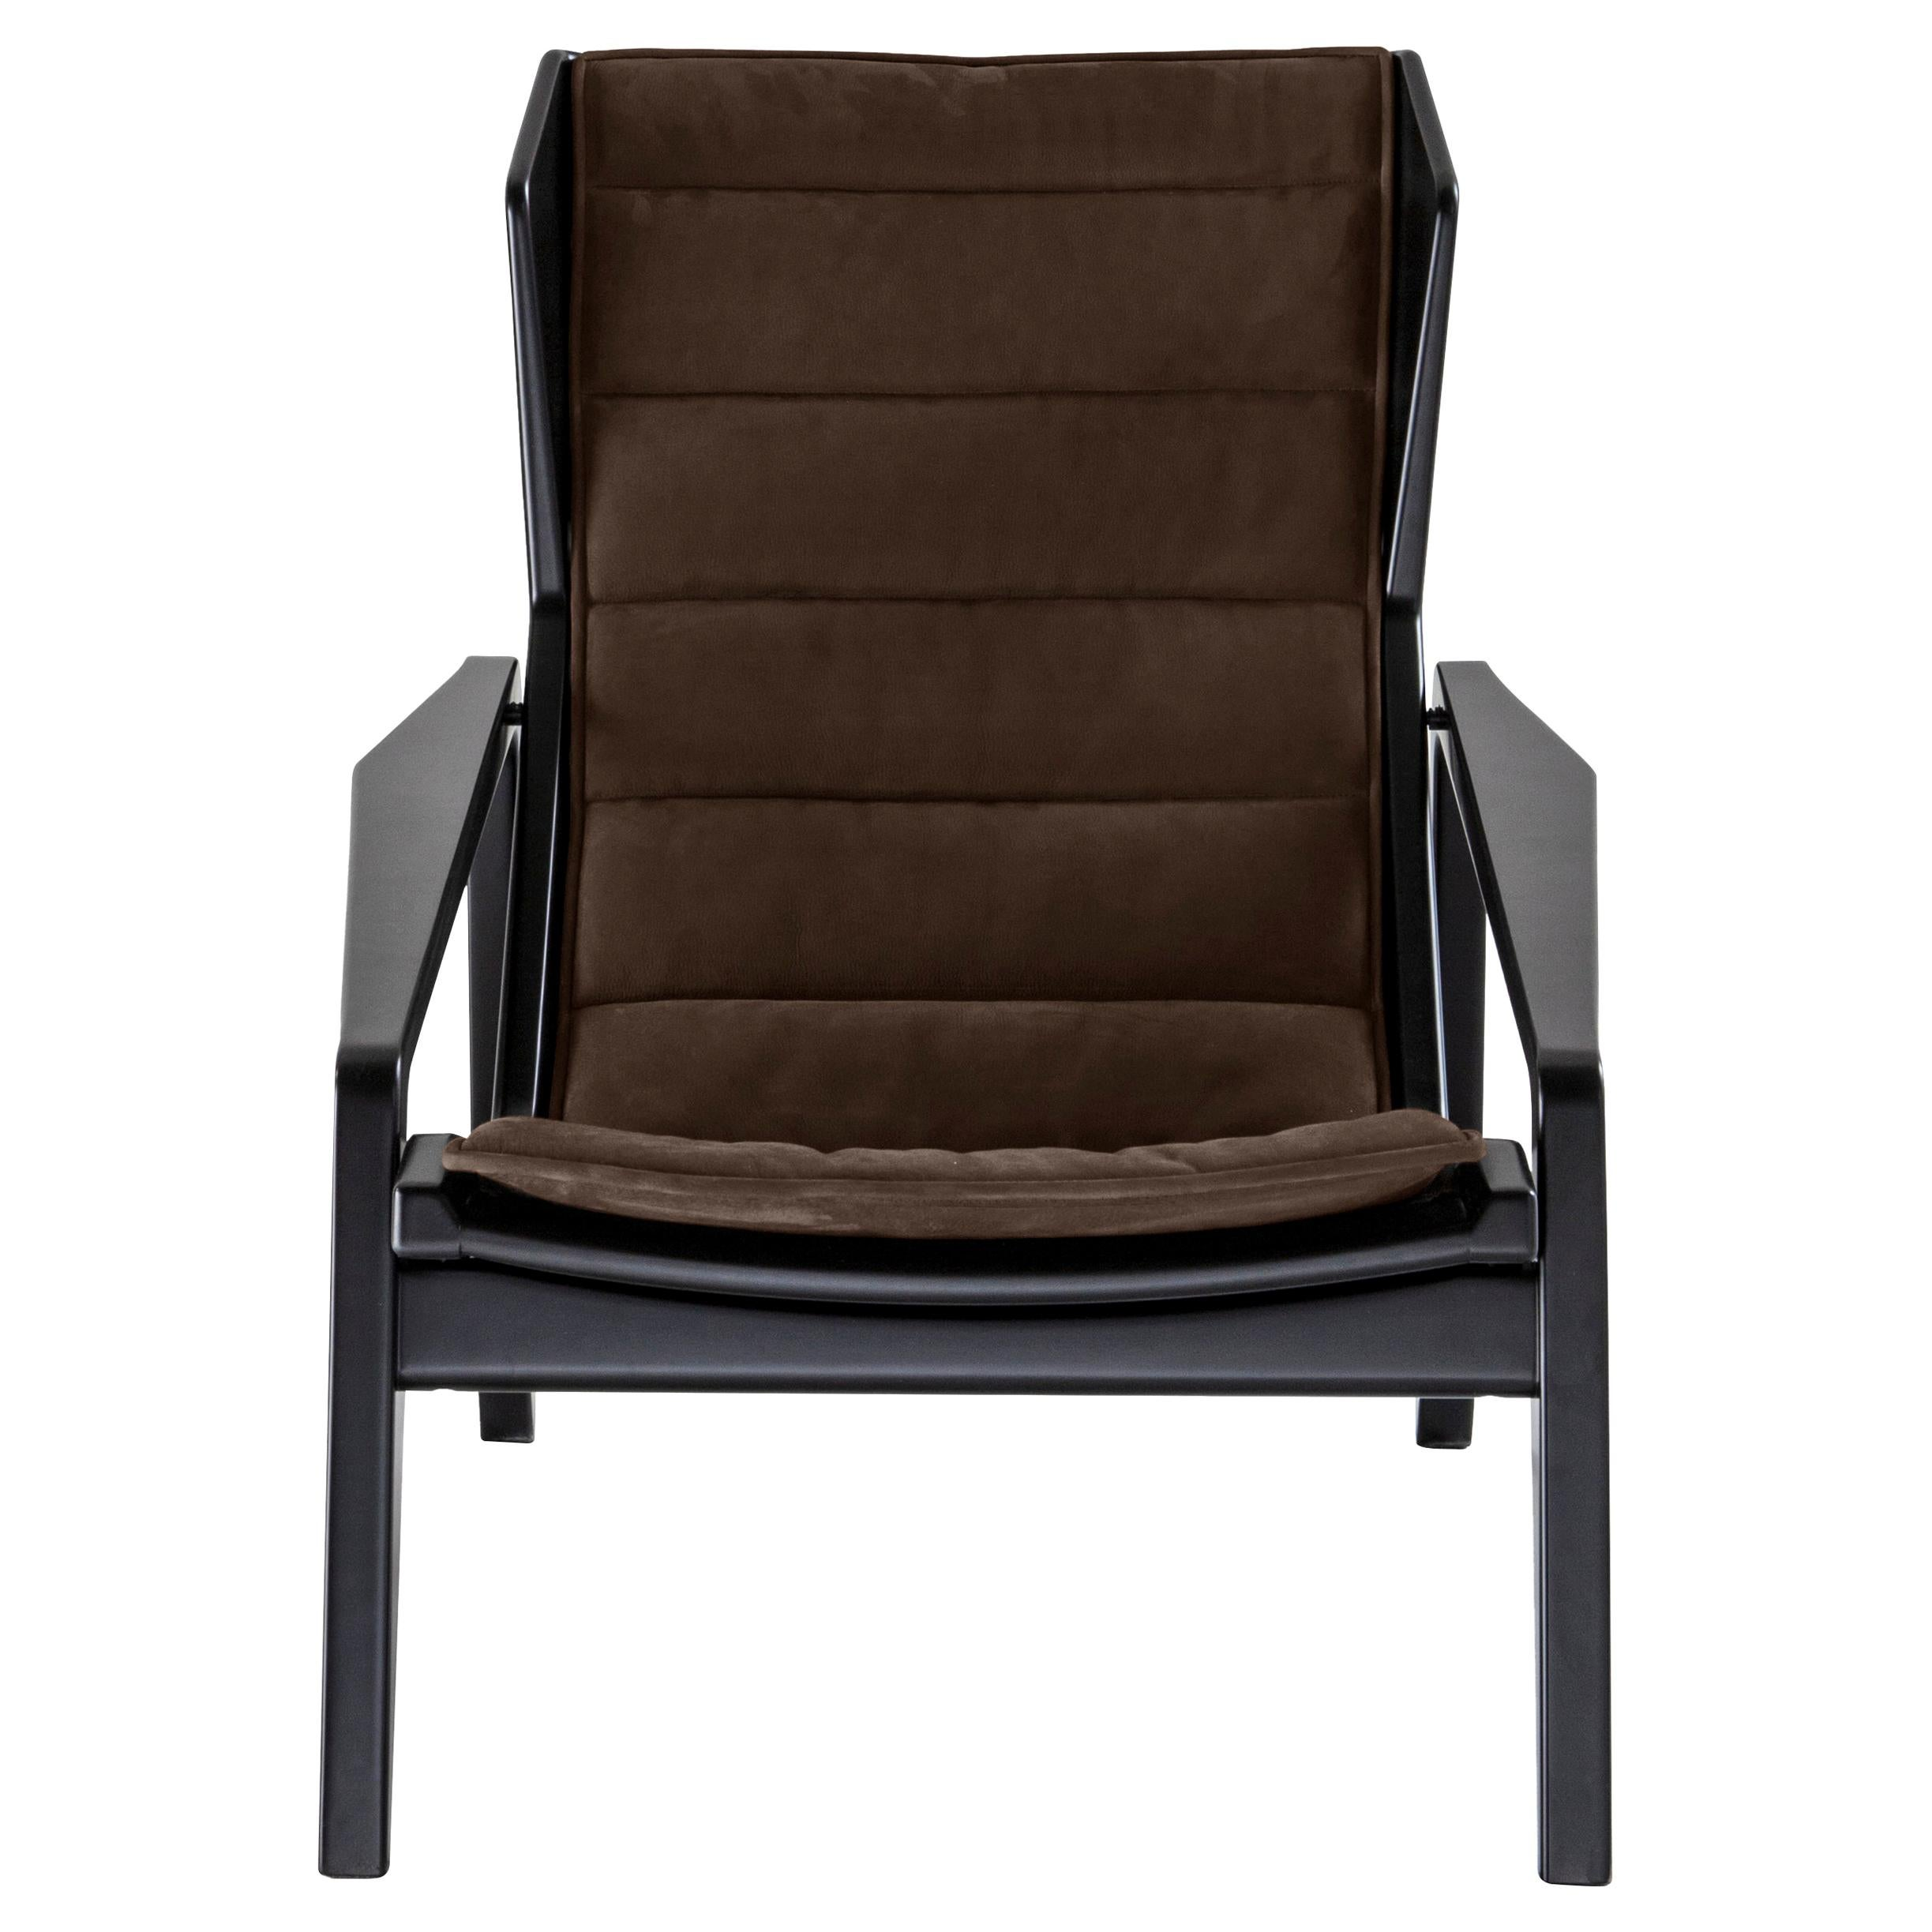 Molteni&C D.156.3 Armchair in American Walnut Structure and Leather by Gio Ponti